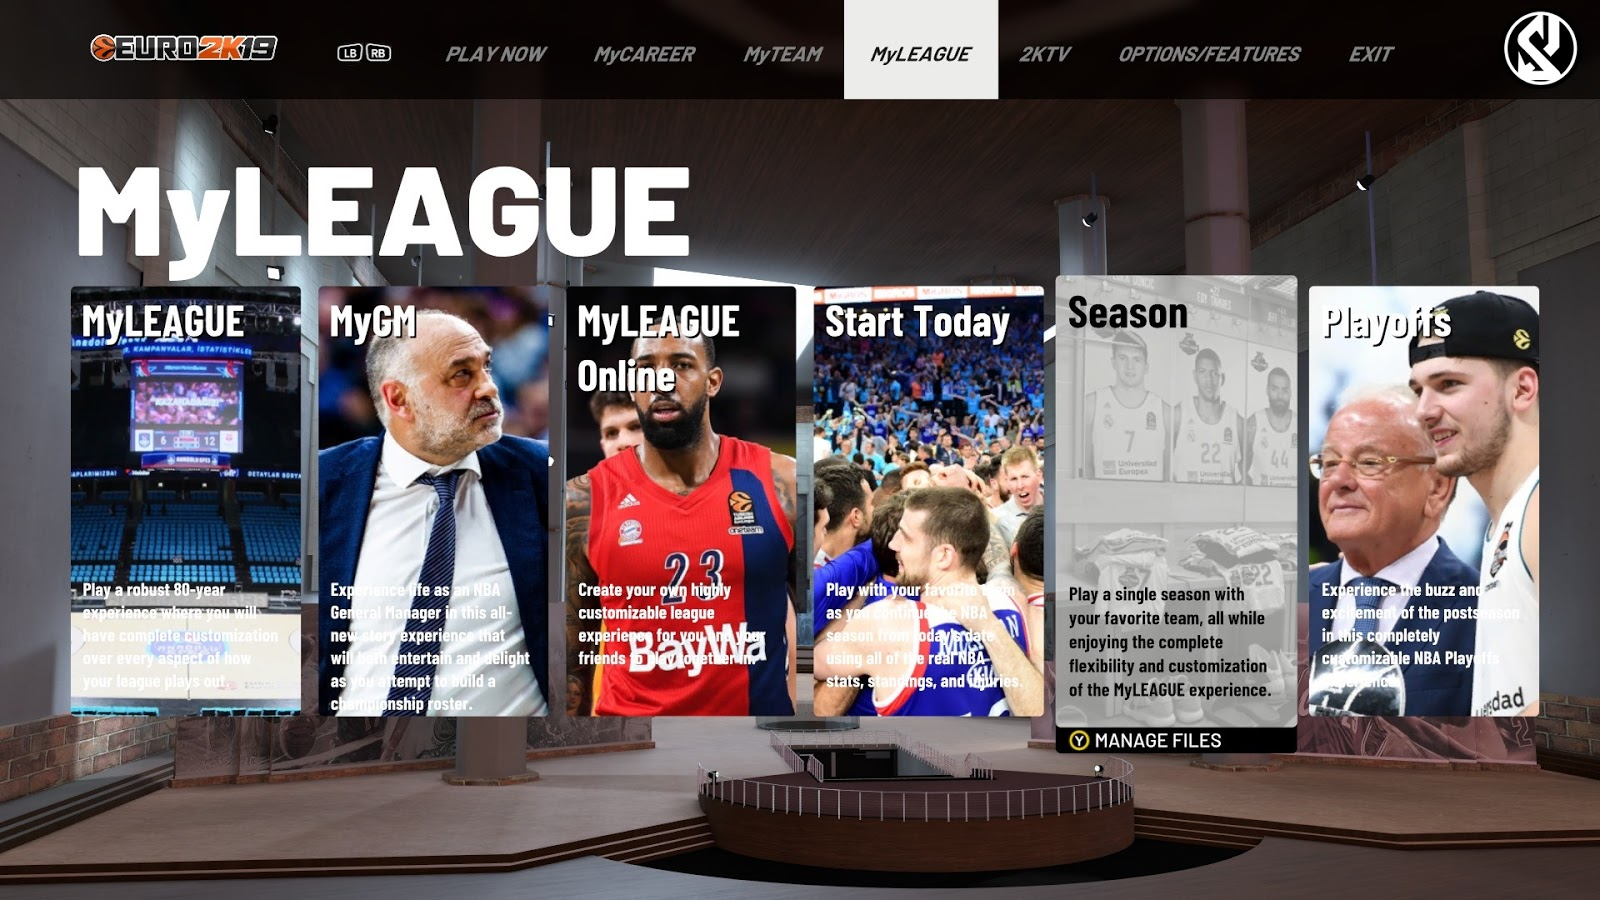 Shuajota | Your Videogame to the Next Level: EURO 2K19 PC MOD RELEASED